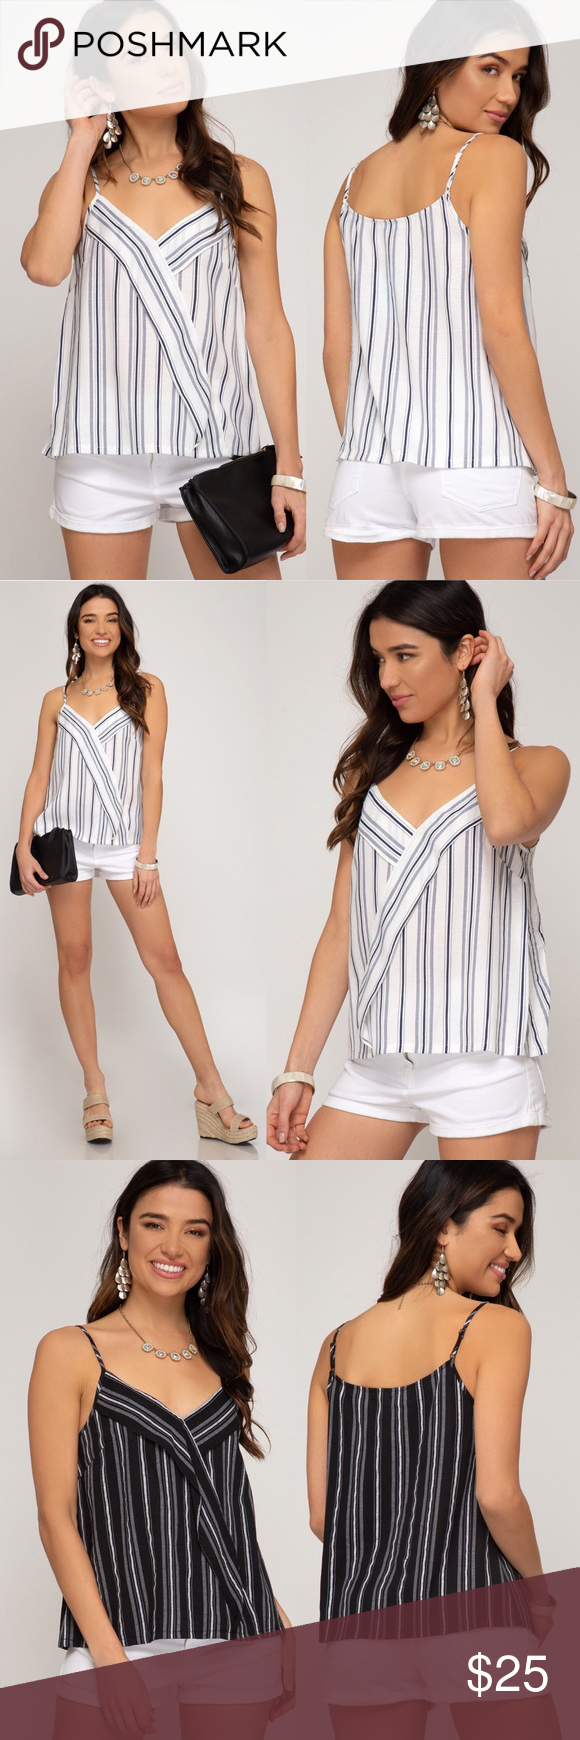 Striped cami top Striped woven cami top with front surprise detail Tops Blouses #stripedcamitops Striped cami top Striped woven cami top with front surprise detail Tops Blouses #stripedcamitops